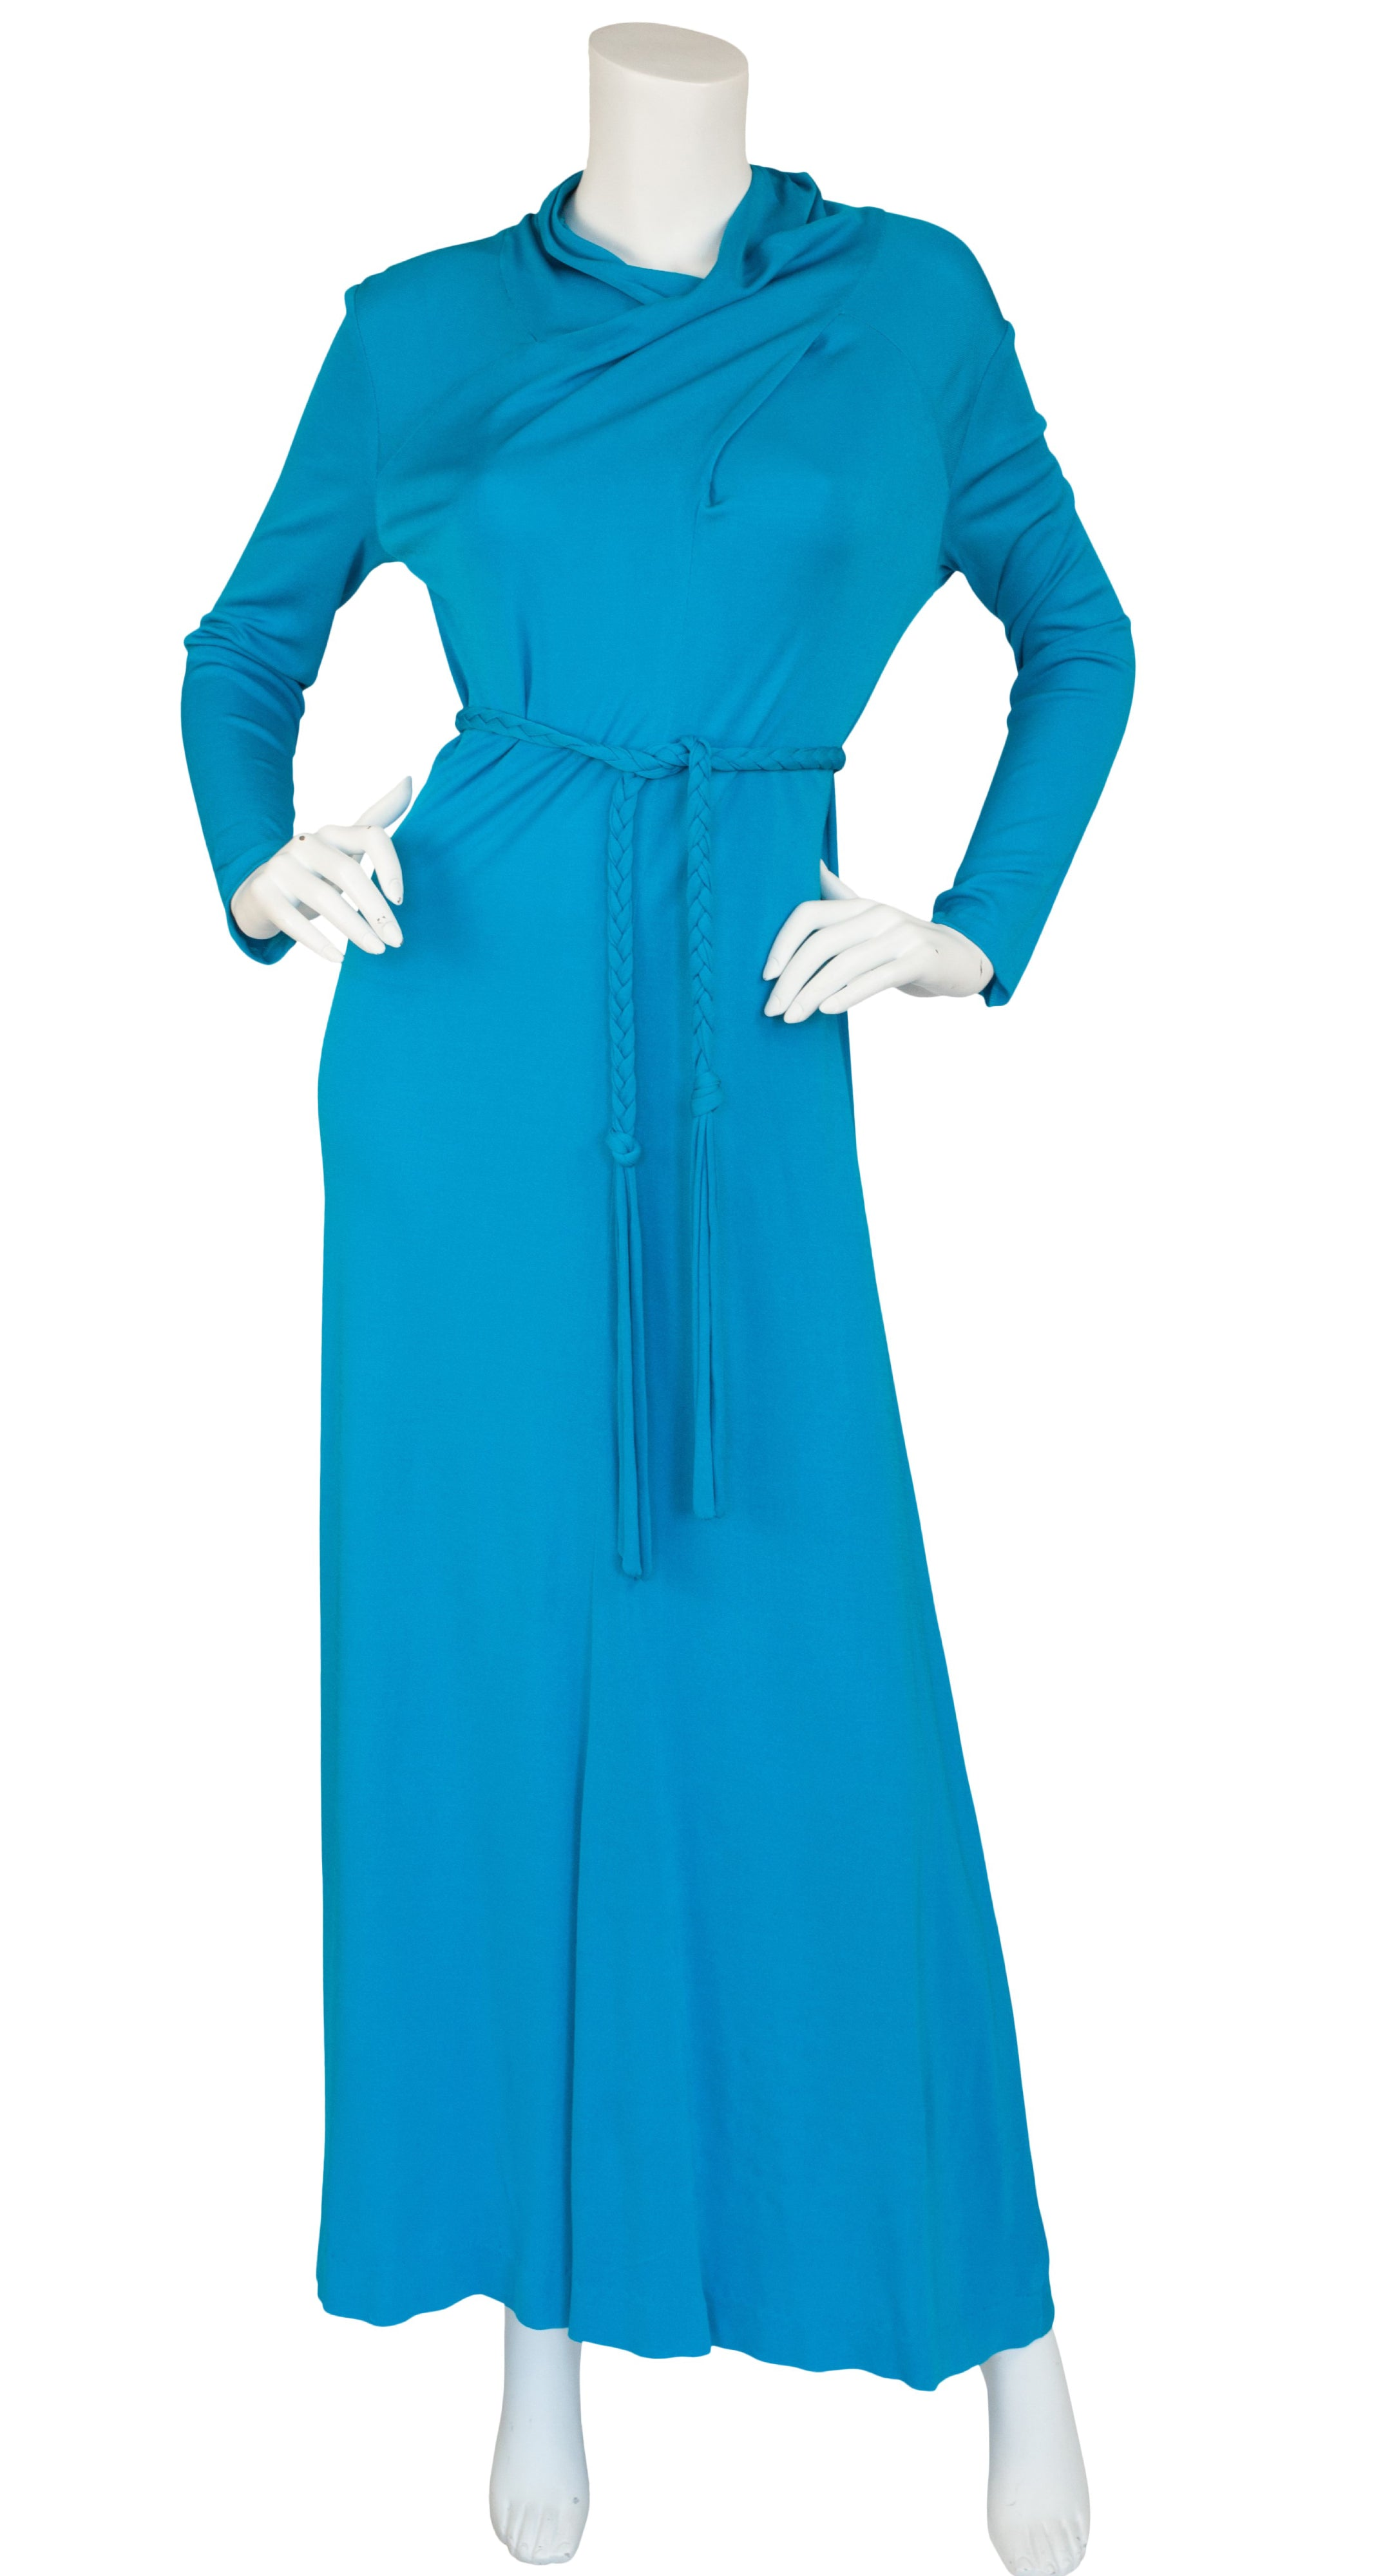 1970s Italian Blue Rayon Jersey Dress